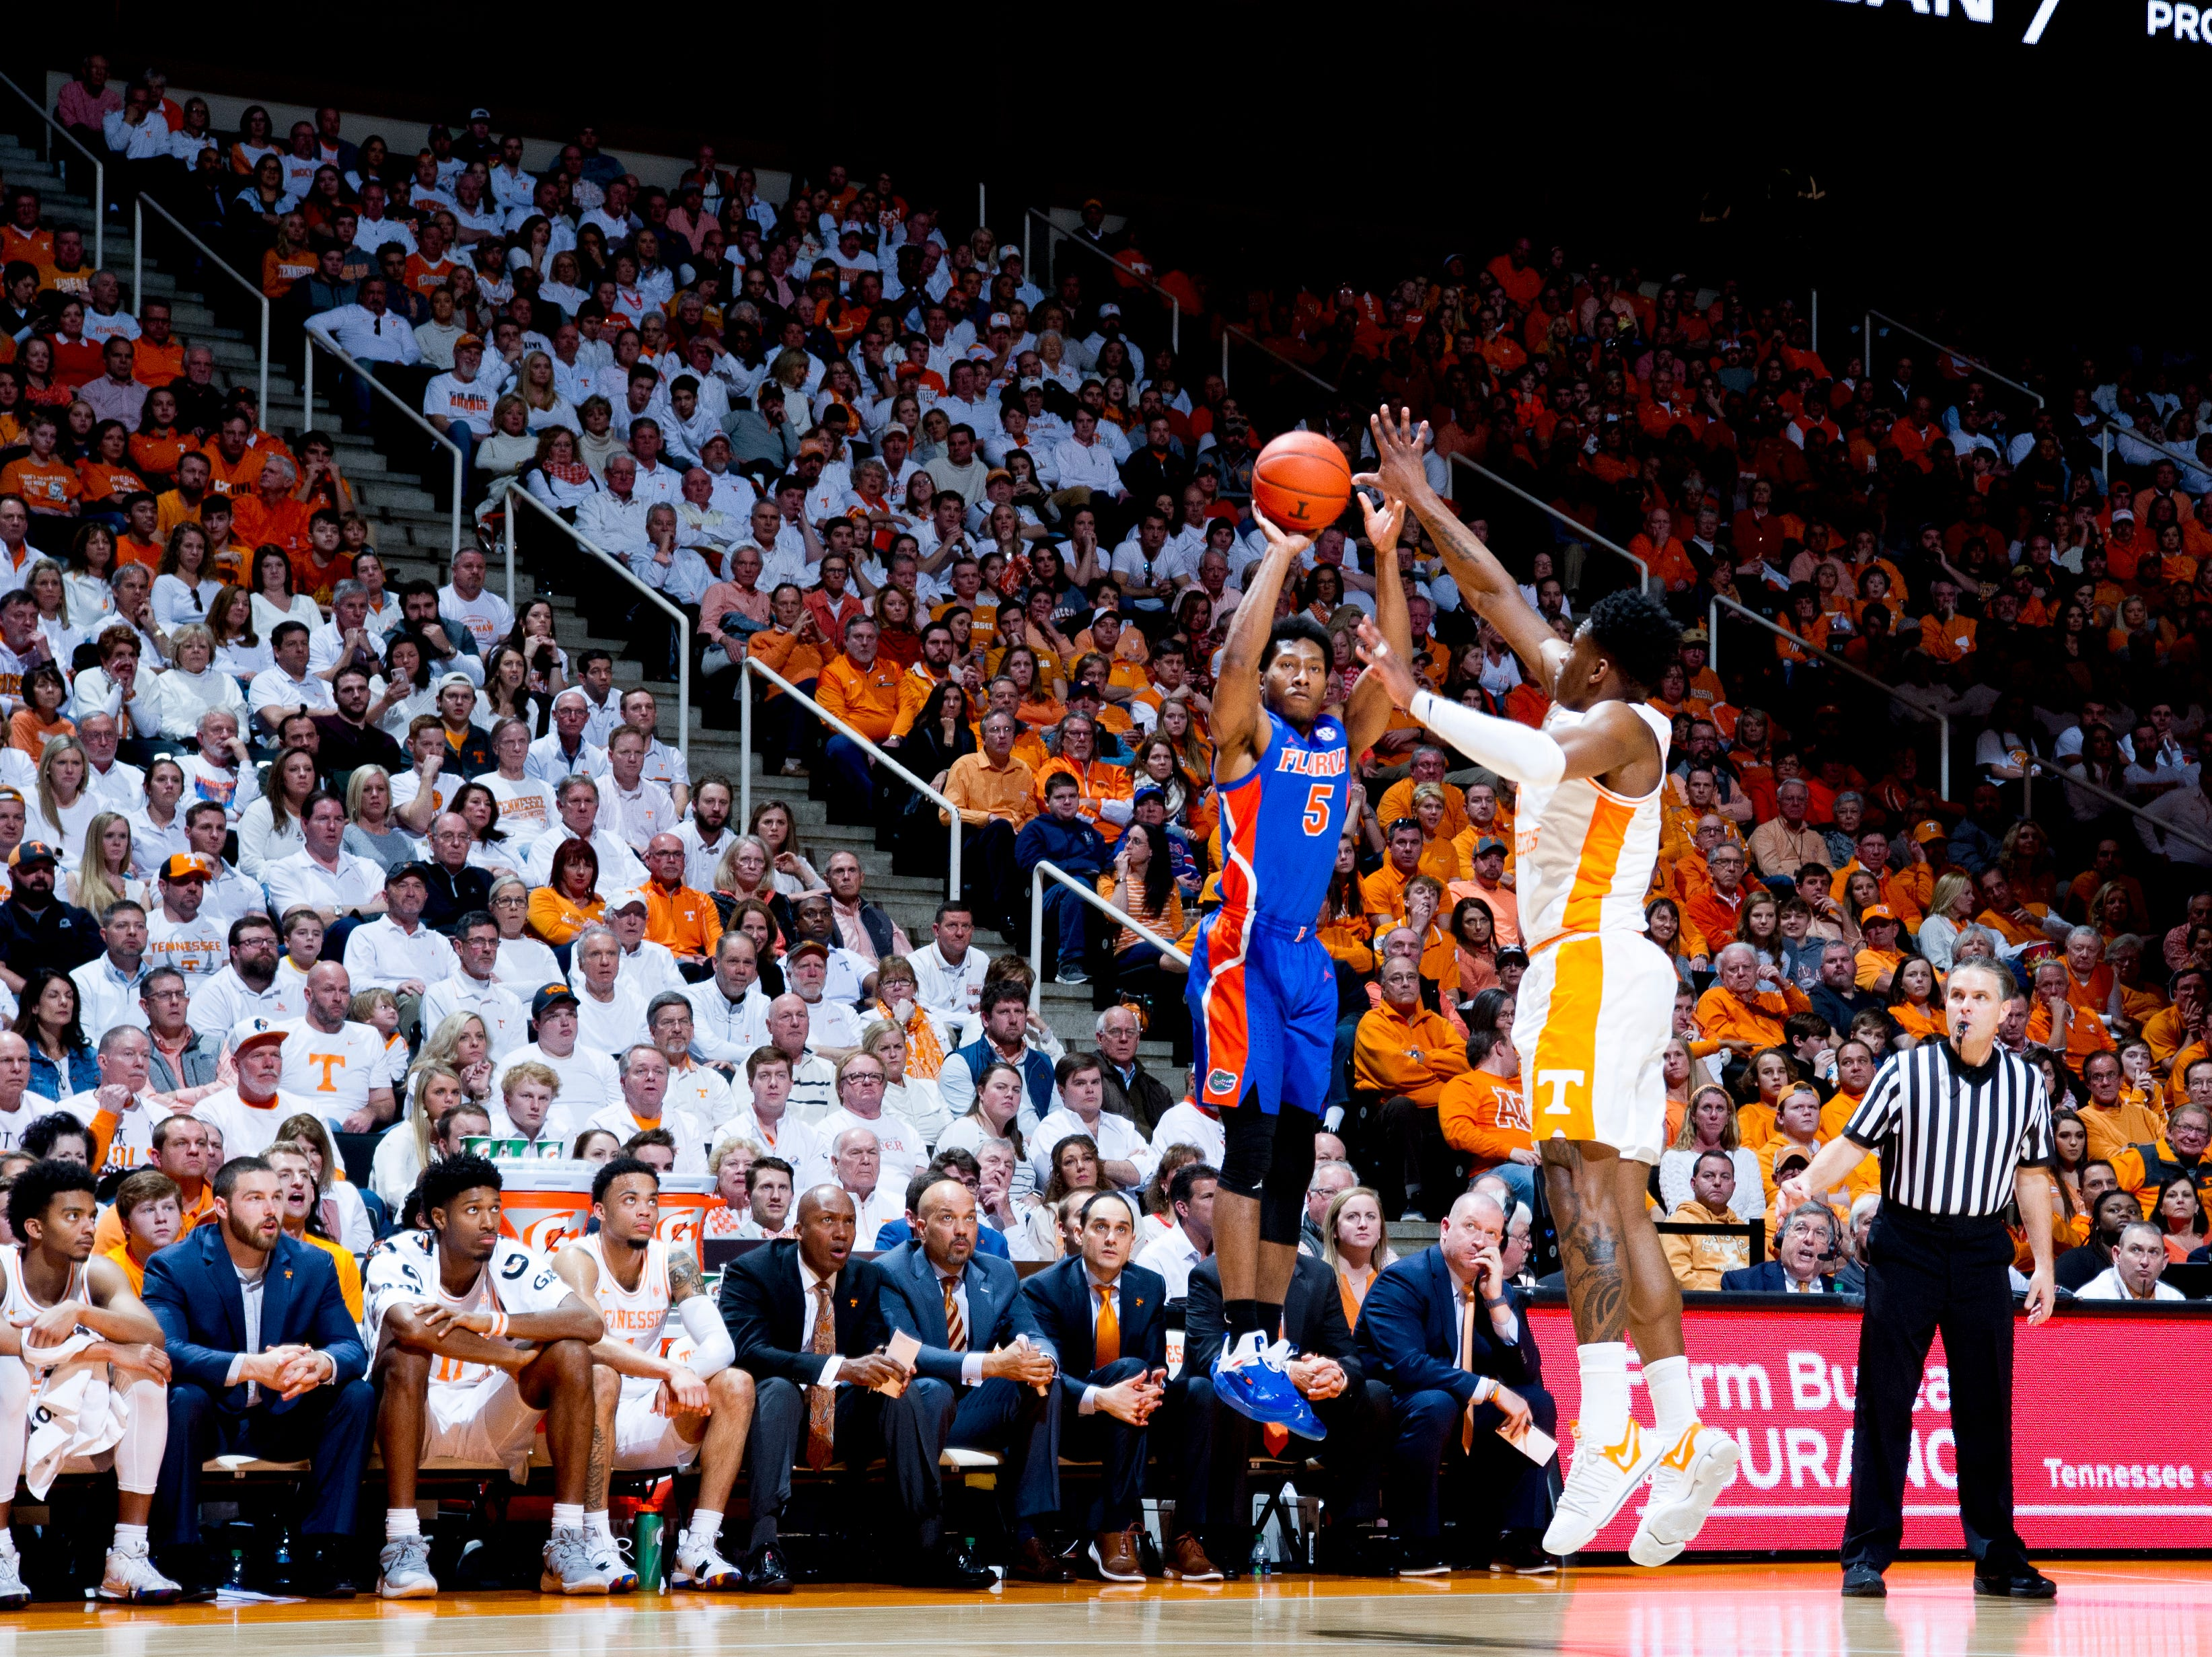 Florida guard KeVaughn Allen (5) shoots the ball as Tennessee guard Admiral Schofield (5) defend during a game between Tennessee and Florida at Thompson-Boling Arena in Knoxville, Tennessee on Saturday, February 9, 2019.